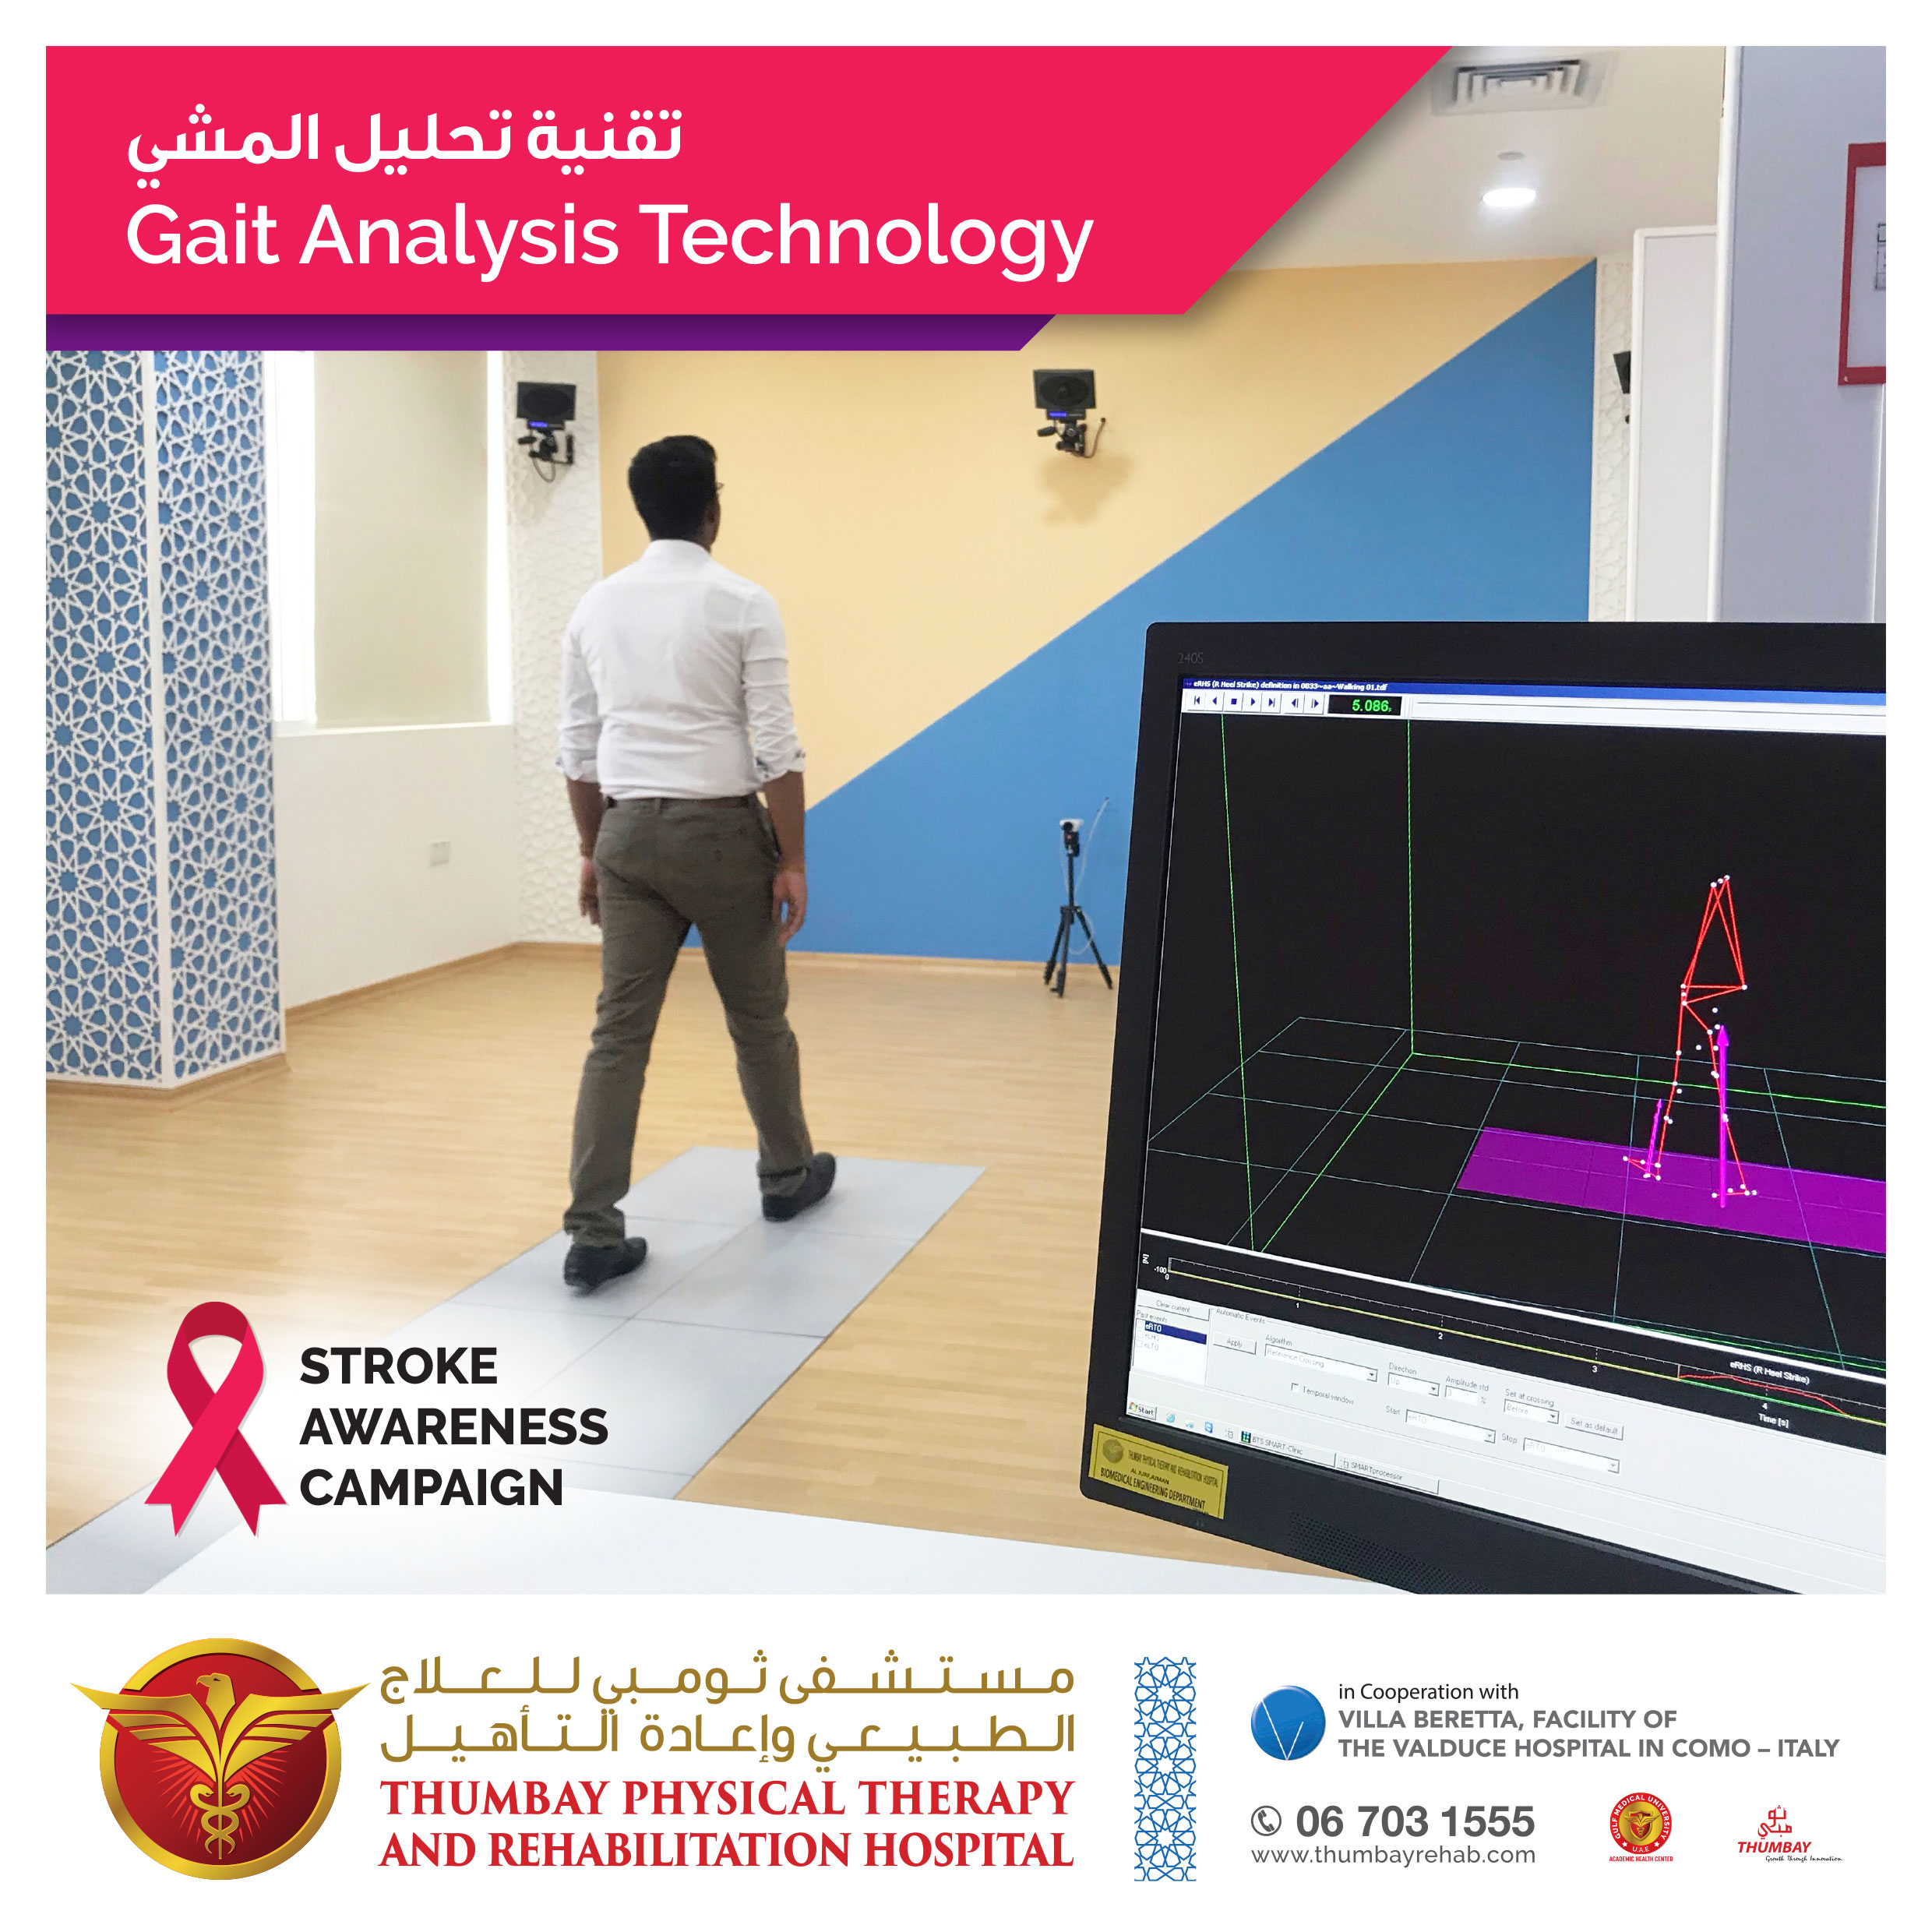 Gait Analysis Technology